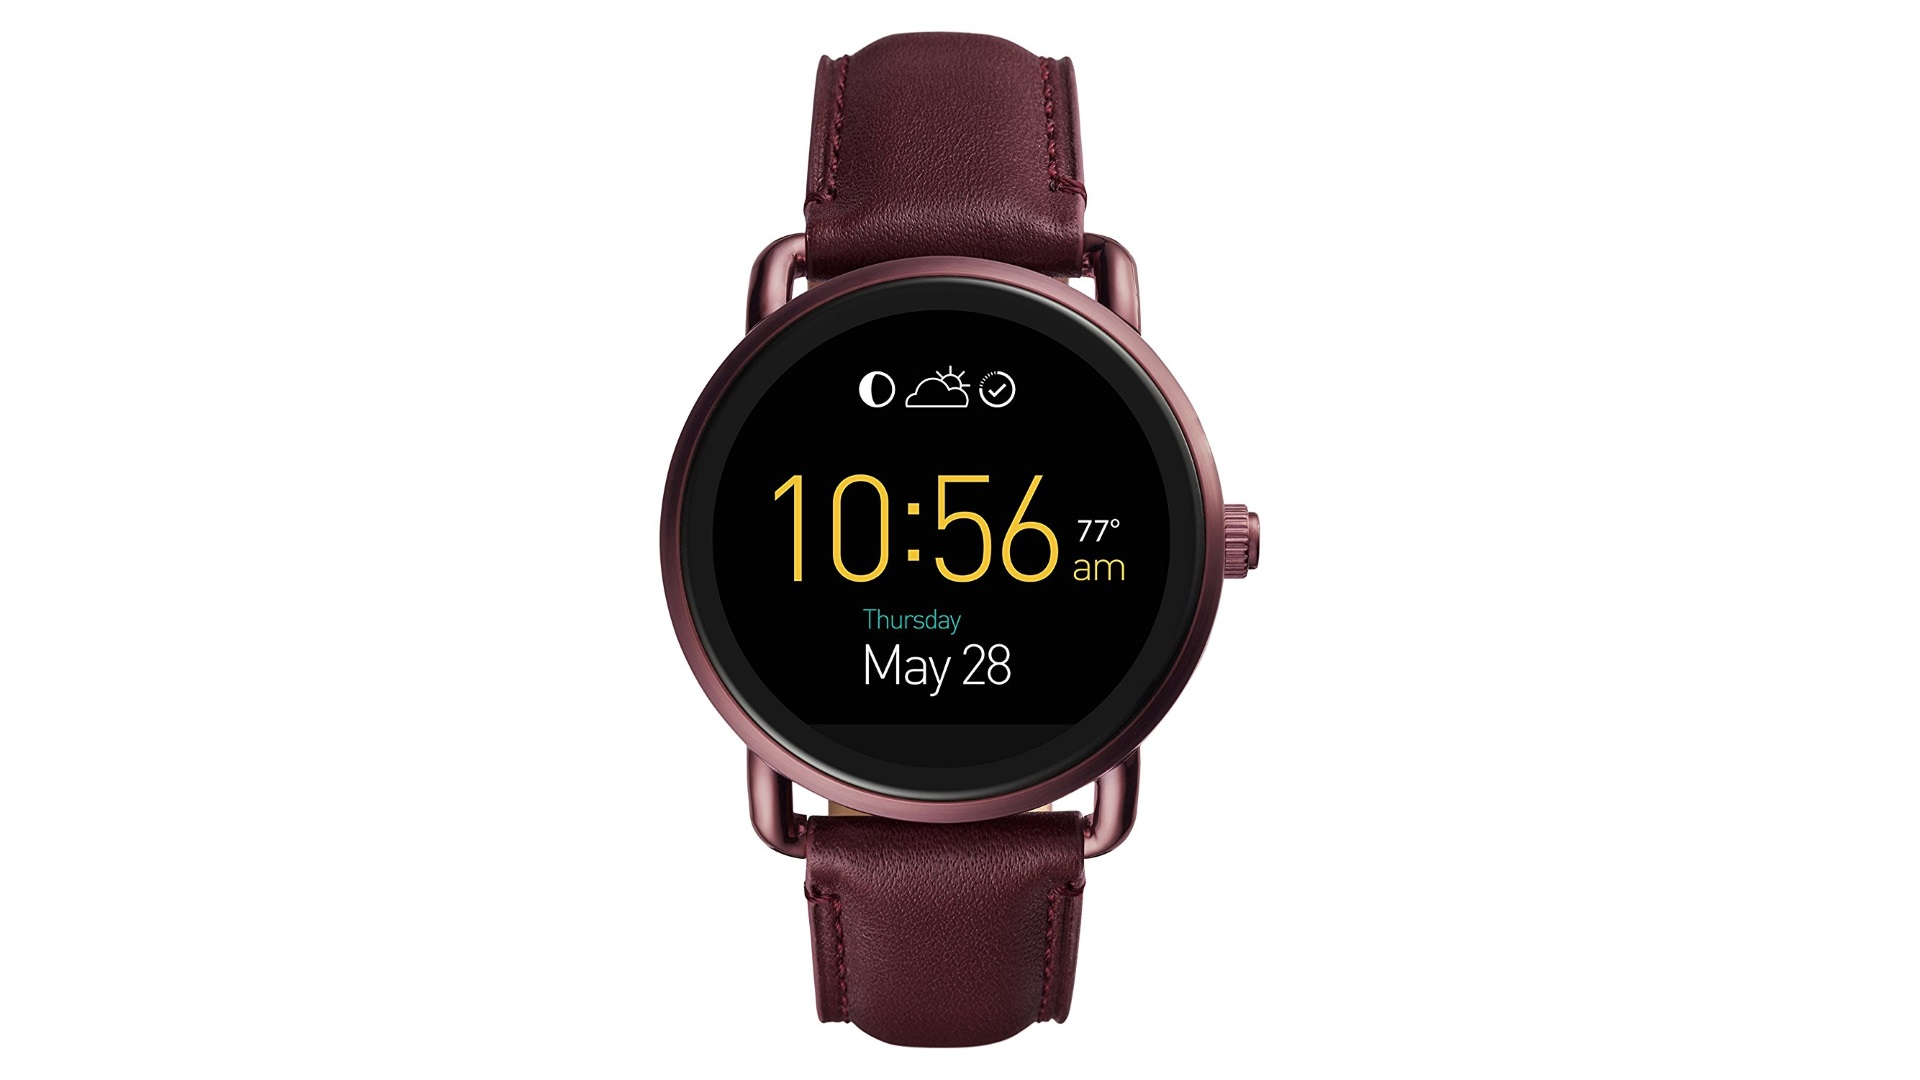 「Fossil Q Marshal/Wander」23,999円【Prime Day】